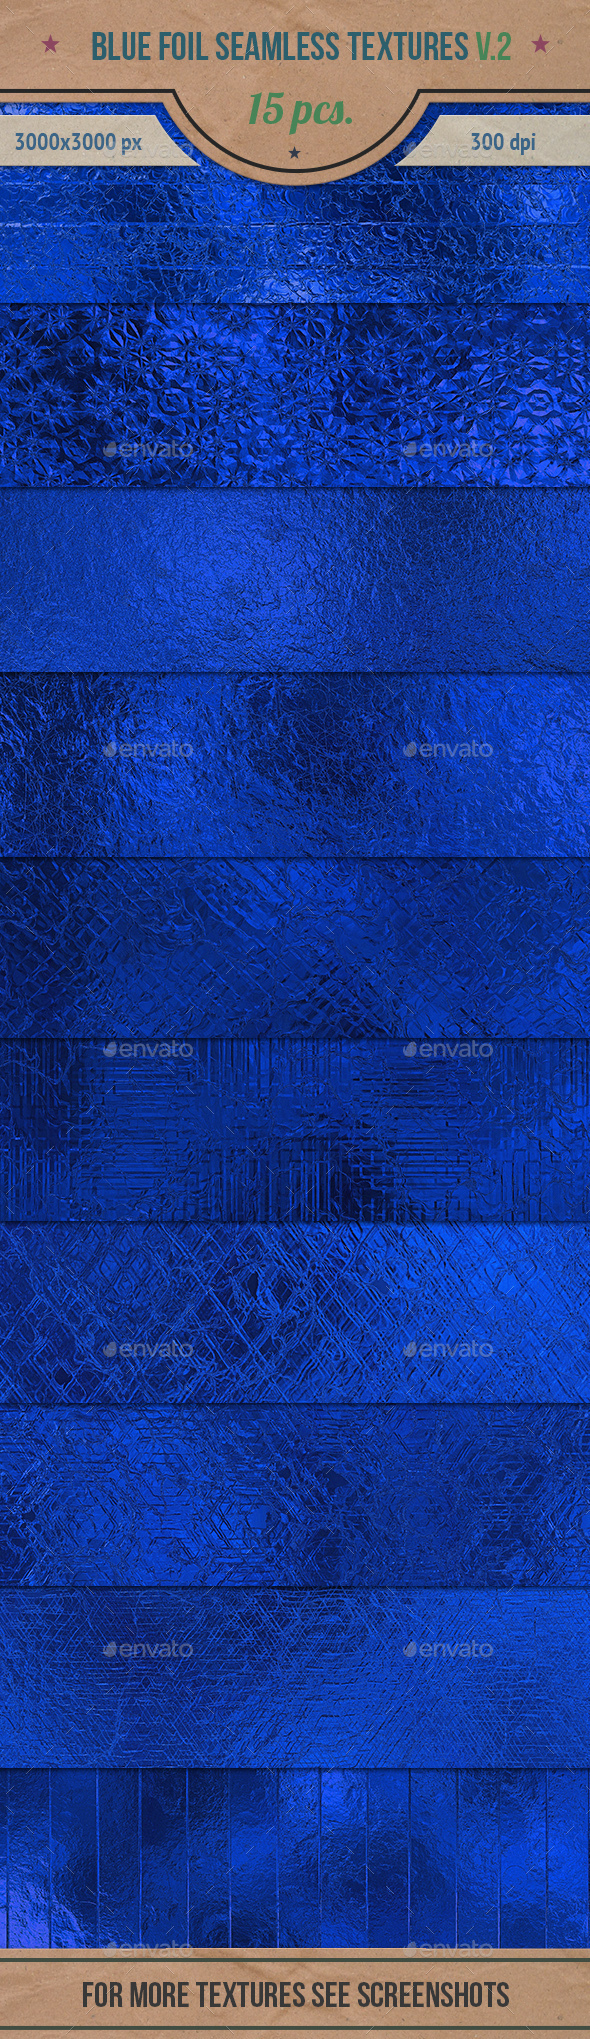 Blue Foil Seamless HD Textures Pack v.2 - Textures